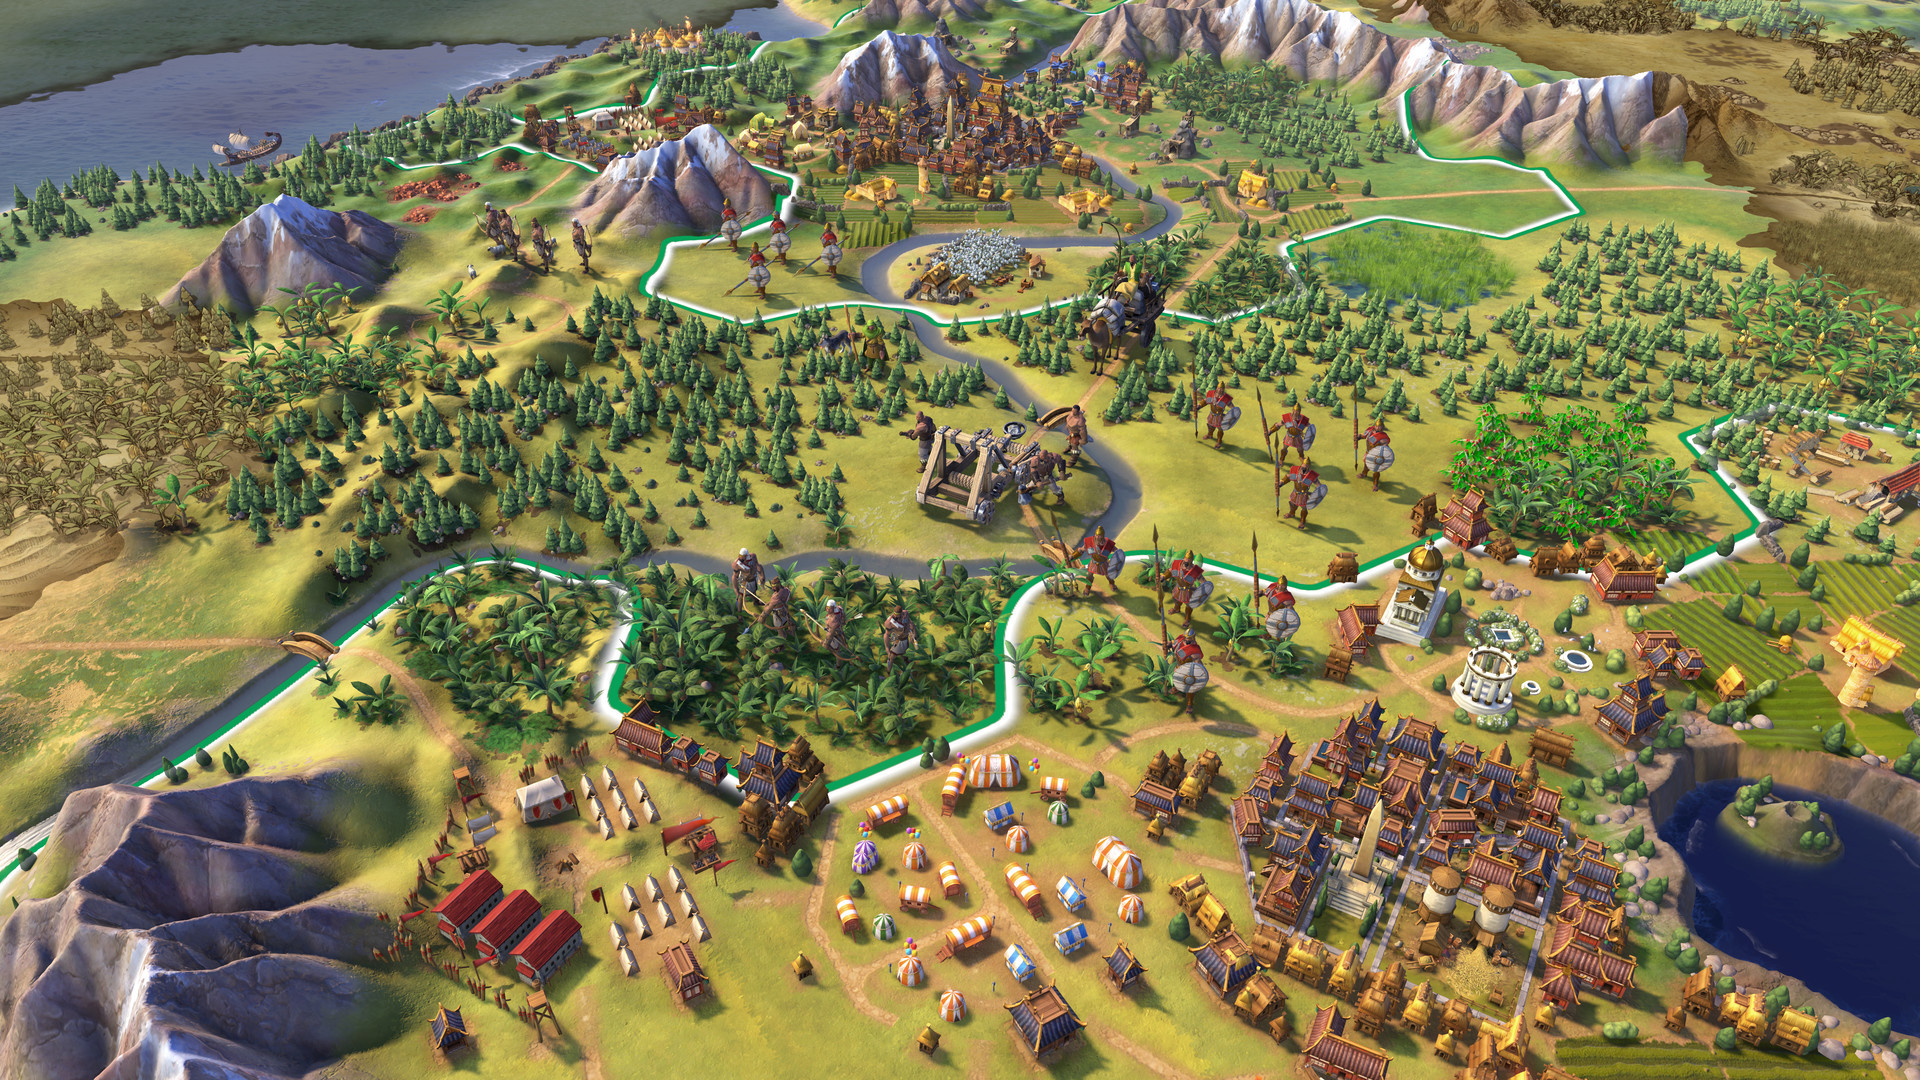 """Civilization fans are making city location maps """"for fun"""""""